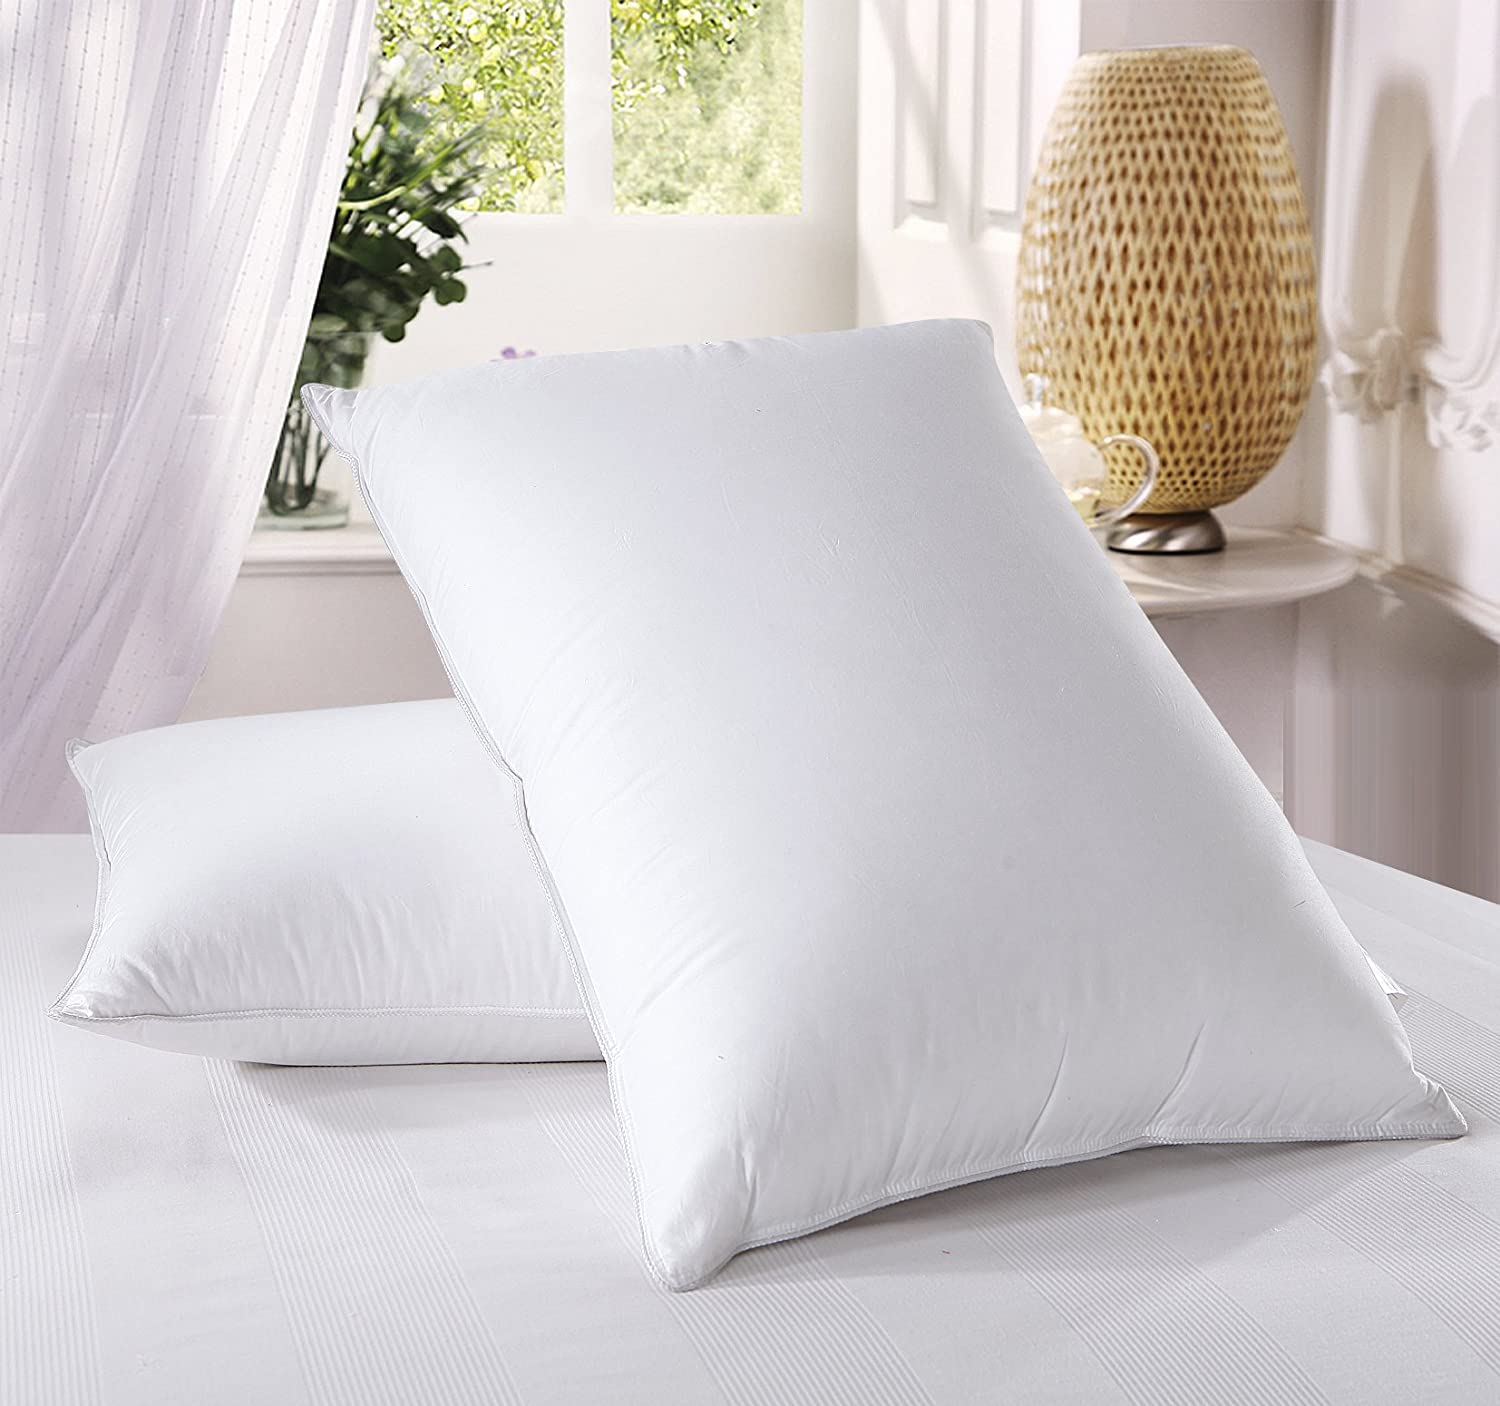 Royal Hotel Medium Firm Down Pillow, Best Down and Feather Pillow